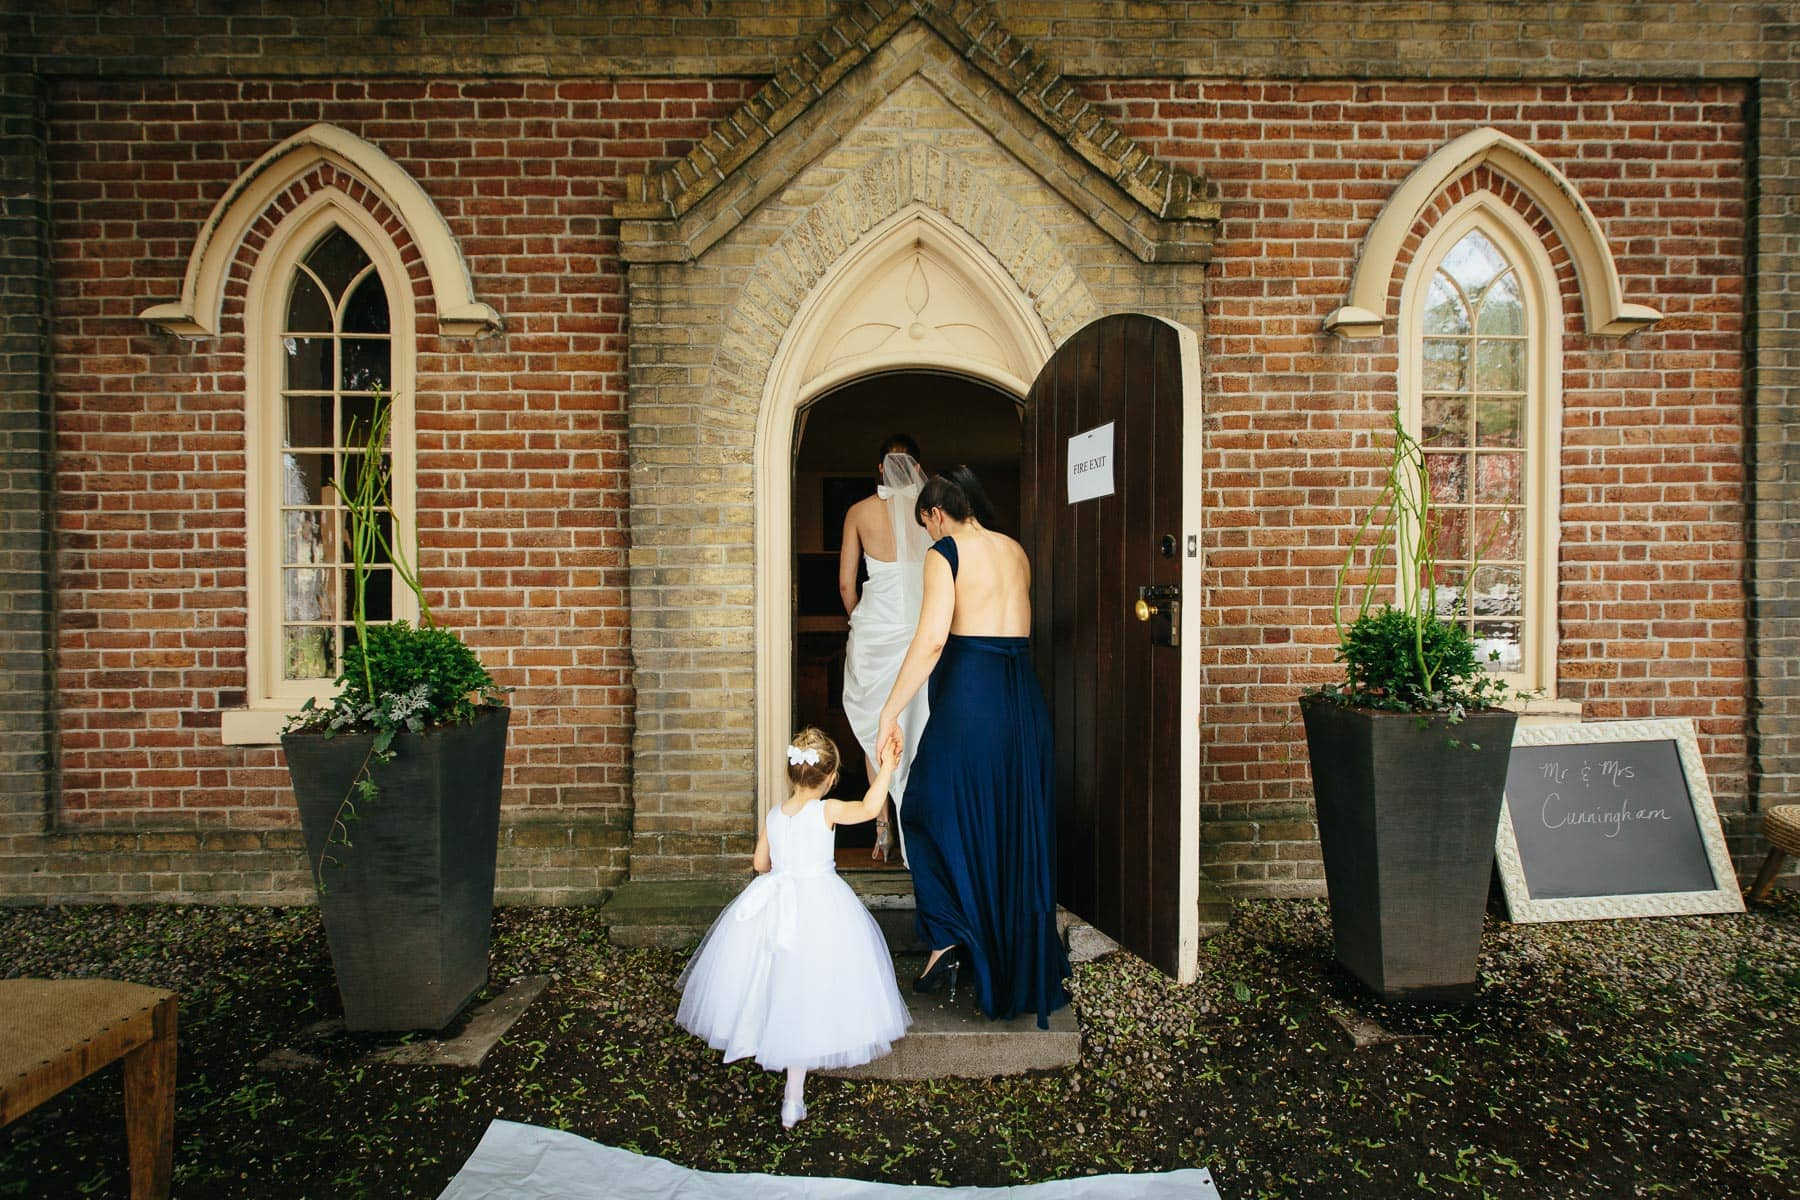 The bride, bridesmaid, and flower girl enter Enoch Turner Schoolhouse for the wedding ceremony. By Toronto wedding photographer Pavel Kounine.